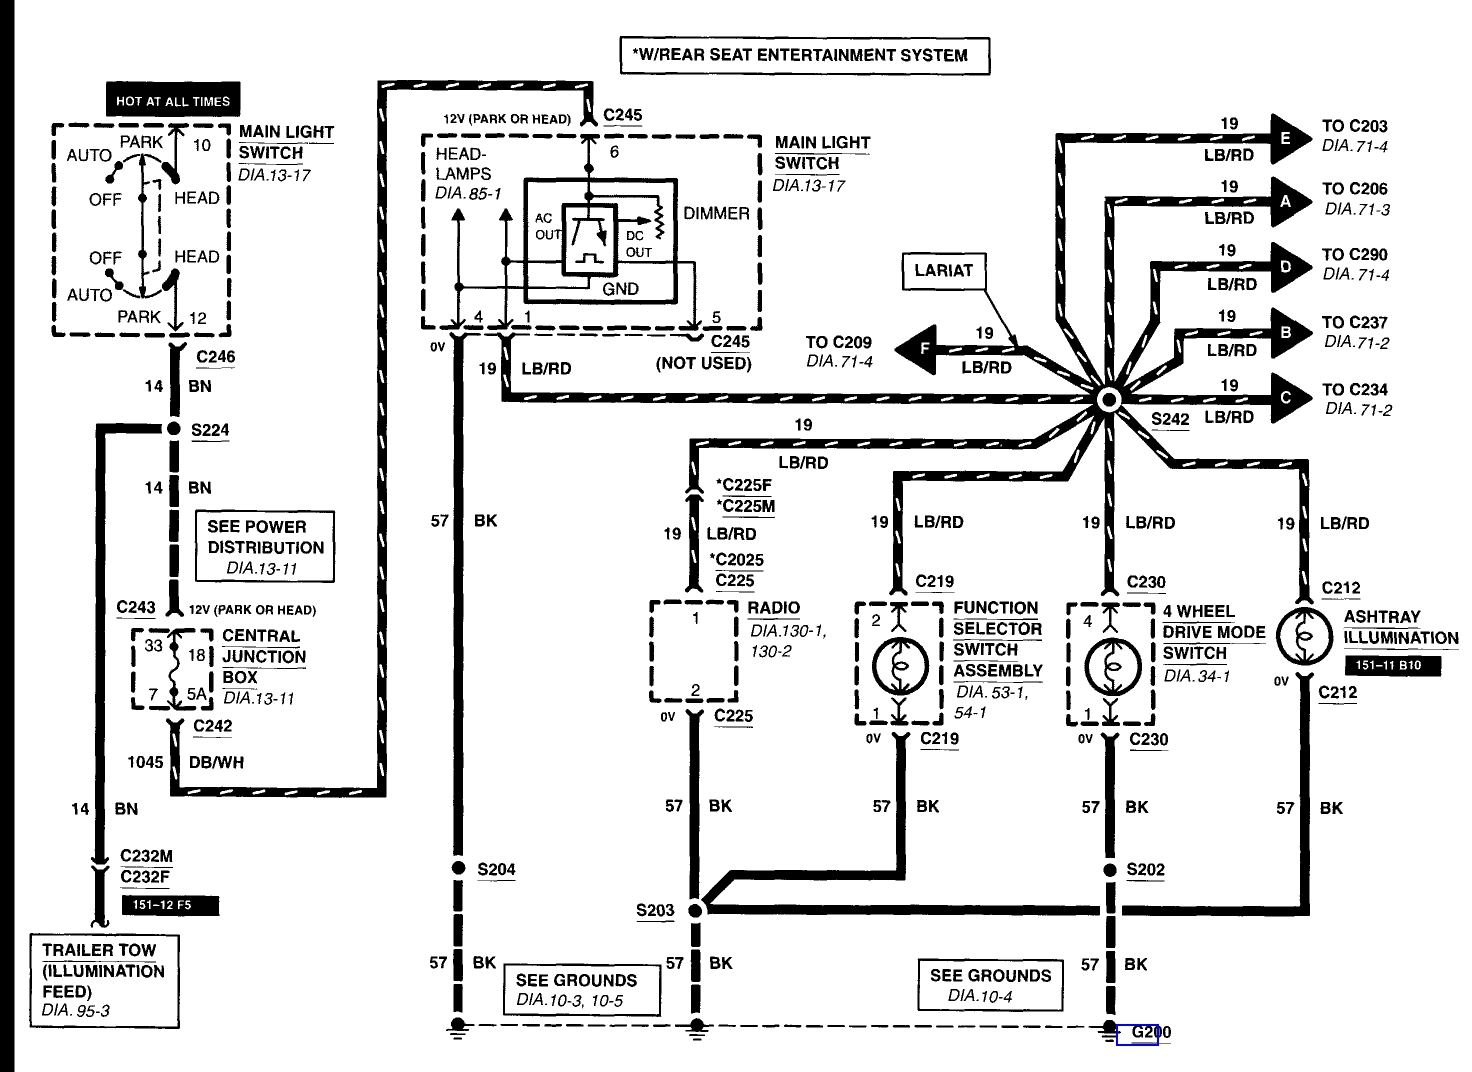 2001 ford f 150 fuel system diagram - wiring diagram export tame-enter -  tame-enter.congressosifo2018.it  congressosifo2018.it